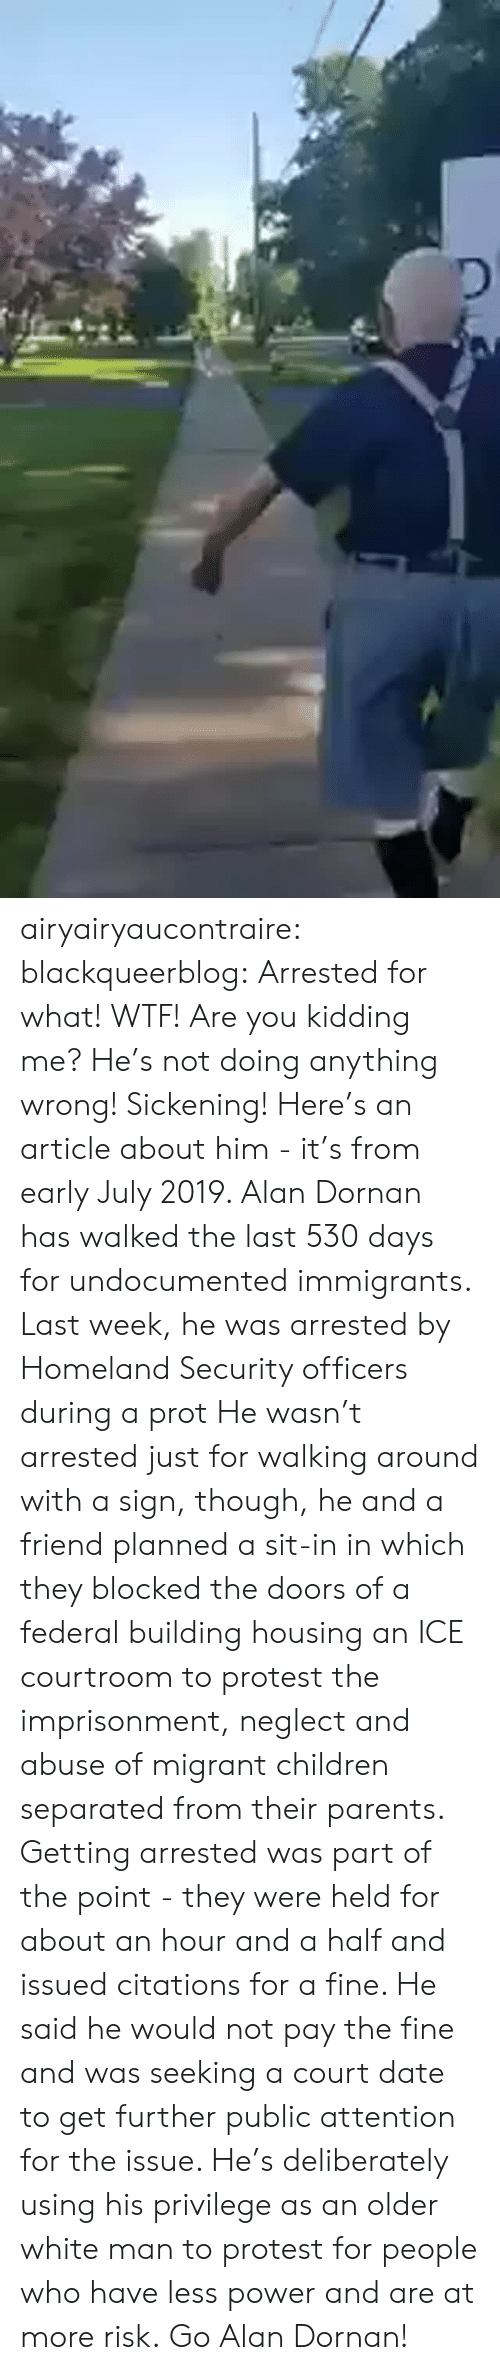 alan: airyairyaucontraire:  blackqueerblog:  Arrested for what! WTF! Are you kidding me? He's not doing anything wrong! Sickening!  Here's an article about him - it's from early July 2019.  Alan Dornan has walked the last 530 days for undocumented immigrants. Last week, he was arrested by Homeland Security officers during a prot He wasn't arrested just for walking around with a sign, though, he and a friend planned a sit-in in which they blocked the doors of a federal building housing an ICE courtroom to protest the imprisonment, neglect and abuse of migrant children separated from their parents.  Getting arrested was part of the point - they were held for about an hour and a half and issued citations for a fine. He said he would not pay the fine and was seeking a court date to get further public attention for the issue.  He's deliberately using his privilege as an older white man to protest for people who have less power and are at more risk. Go Alan Dornan!